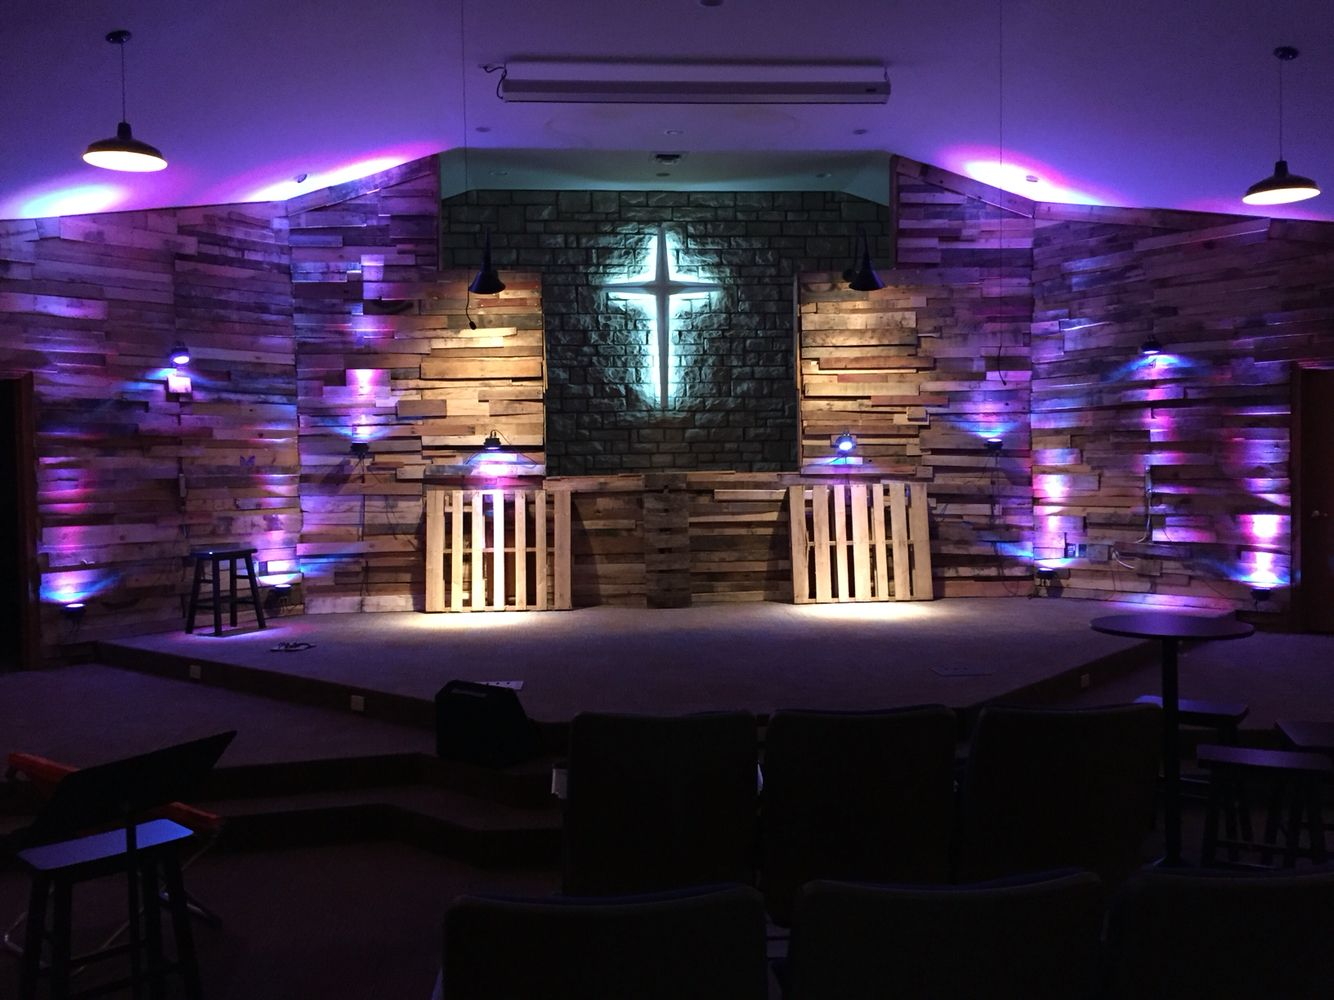 99 youth room decoration ideas | youth ministry ideas | pinterest